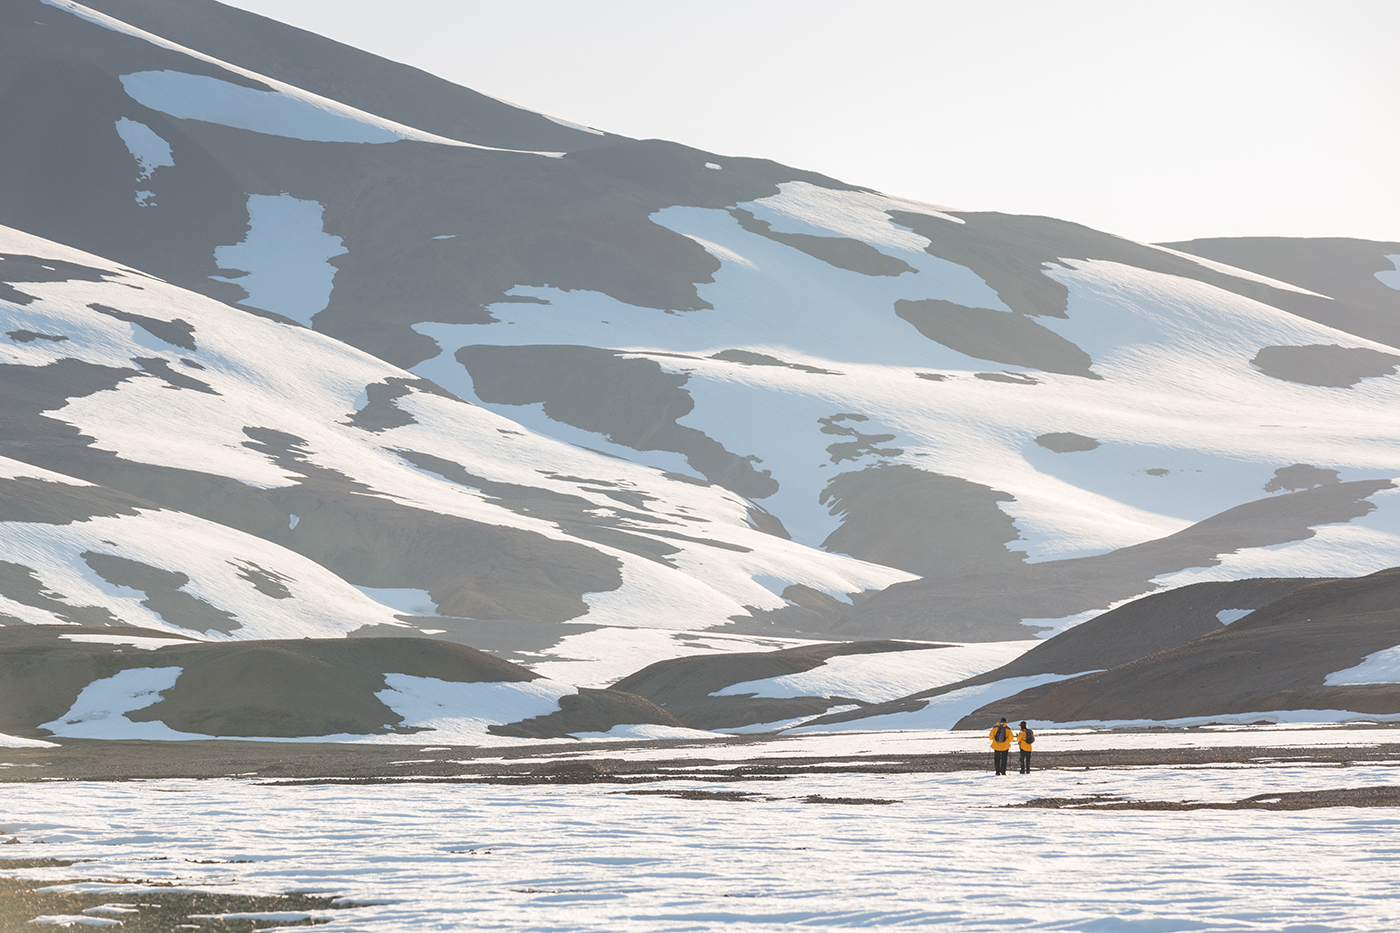 A couple pictured hiking in Dream Bay, East Greenland. Photo by Acacia Johnson